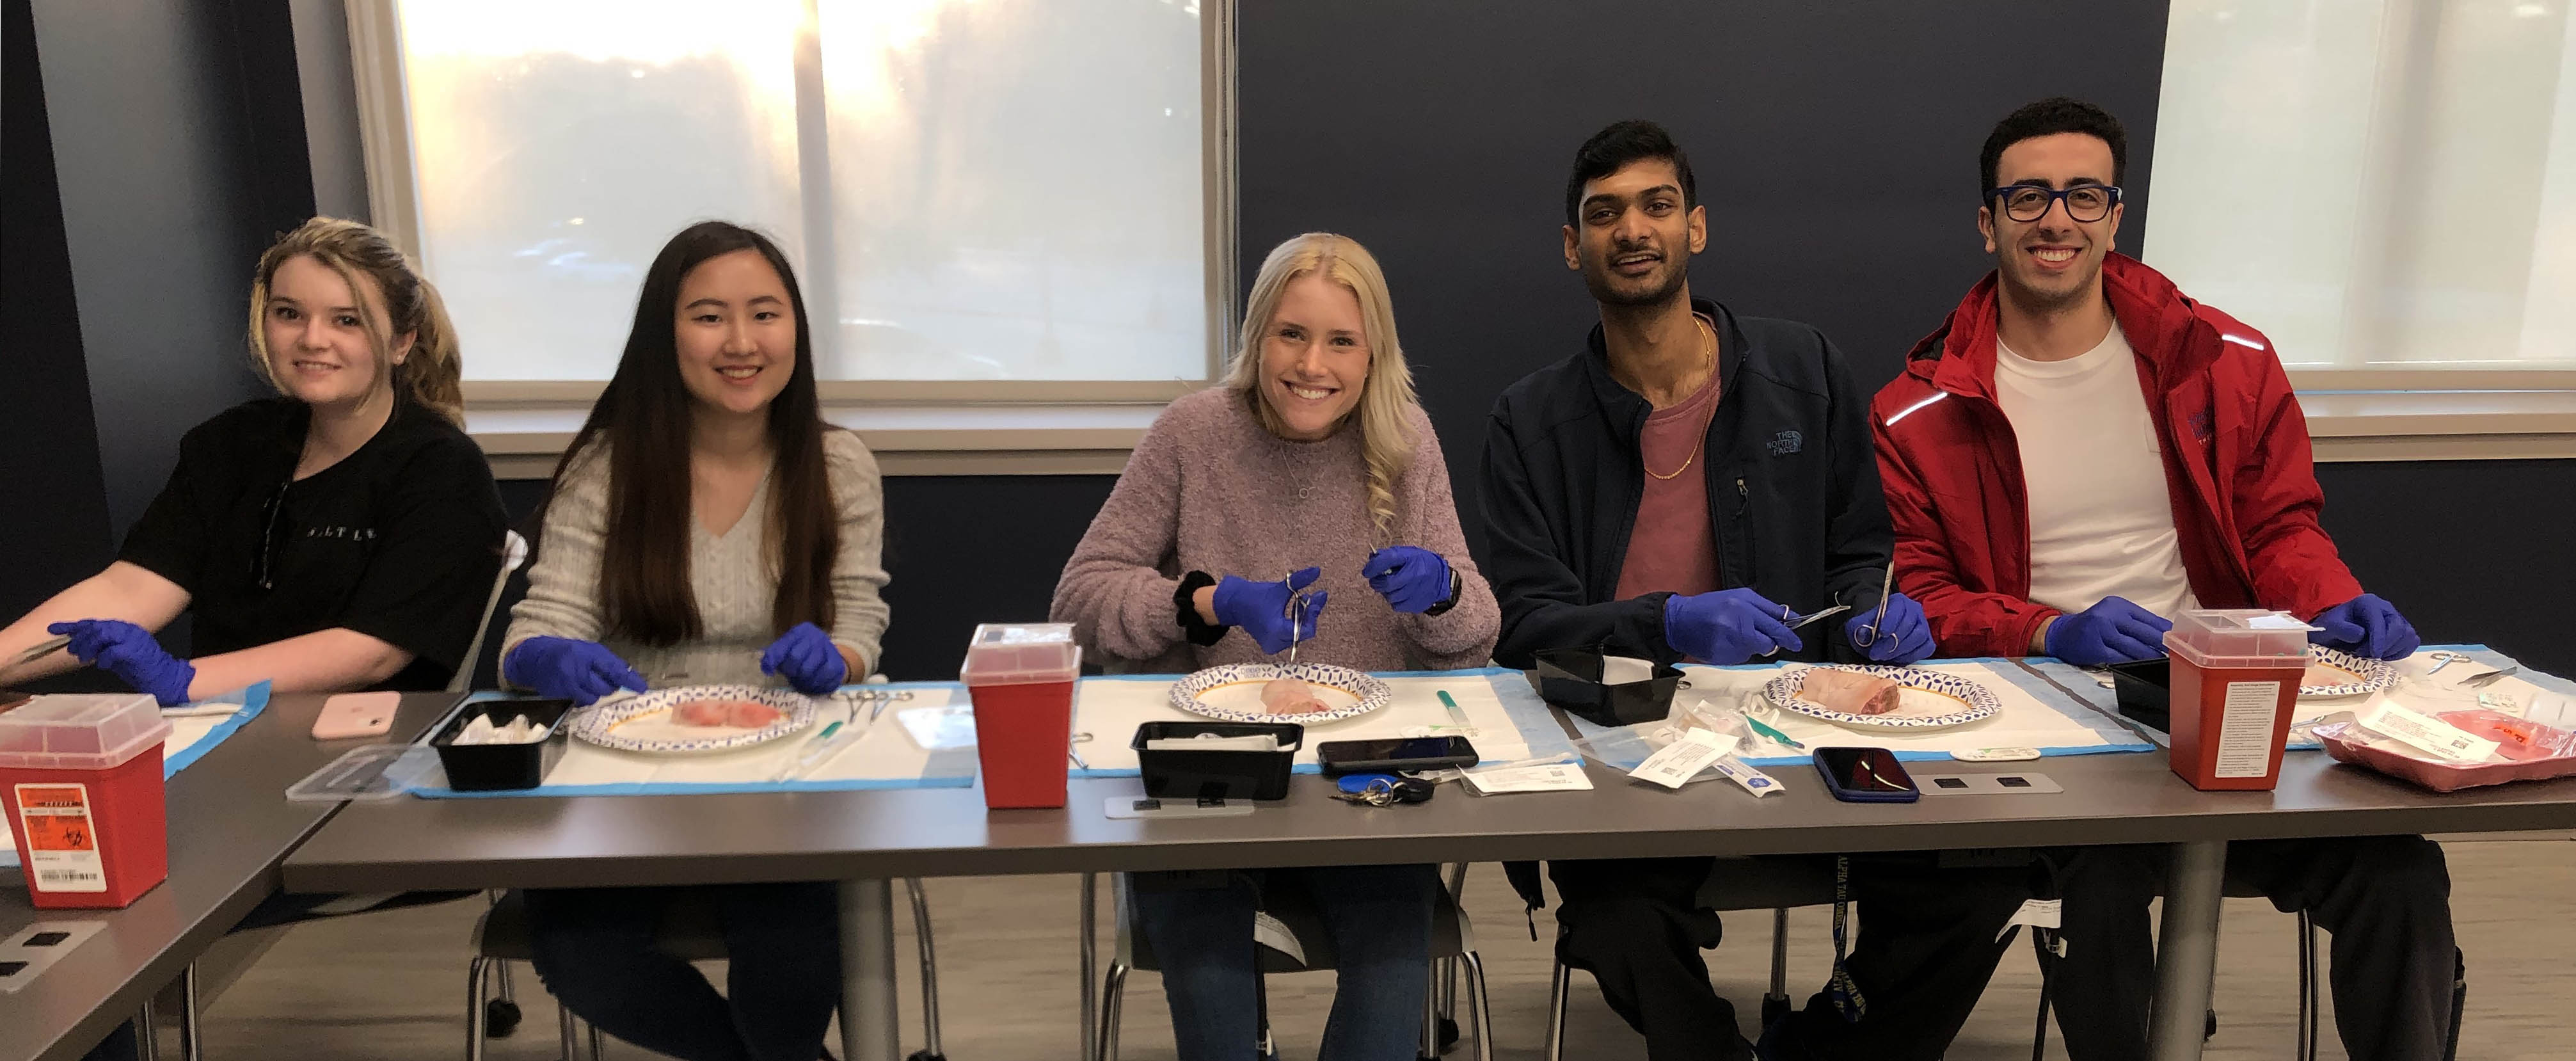 AED 2019-2020 members learning to suture at our spring 2020 suturing clinic